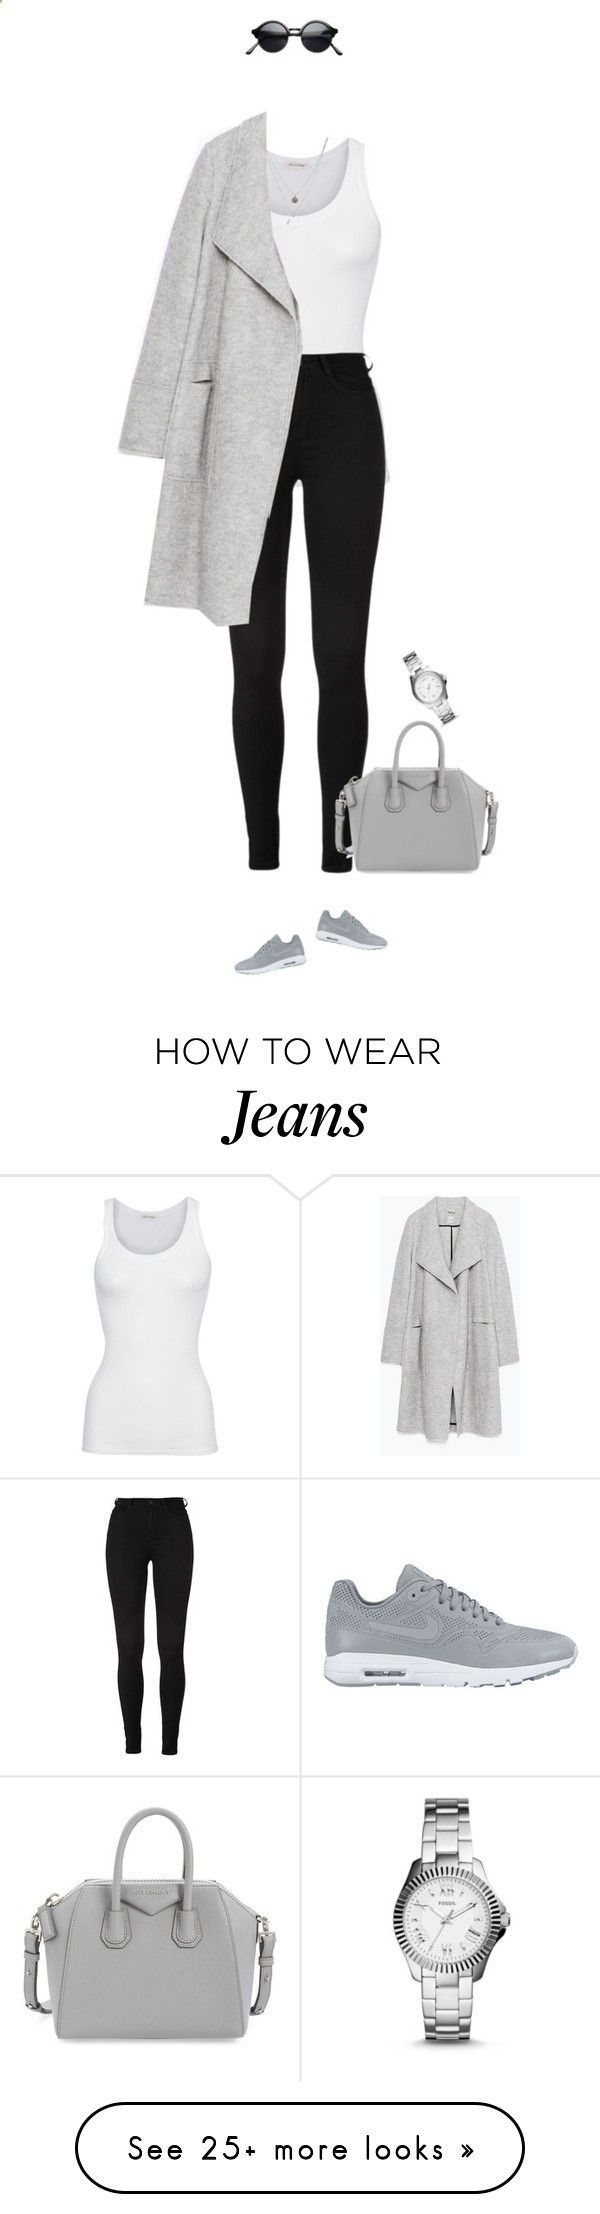 Sports Nike running shoes so beautiful and exquisite,click to come online shopping, Grey, white, black ! by azzra on Polyvore featuring American Vintage, NIKE, Givenchy, Zara, Kenneth Cole, FOSSIL, womens clothing, women, female and woman